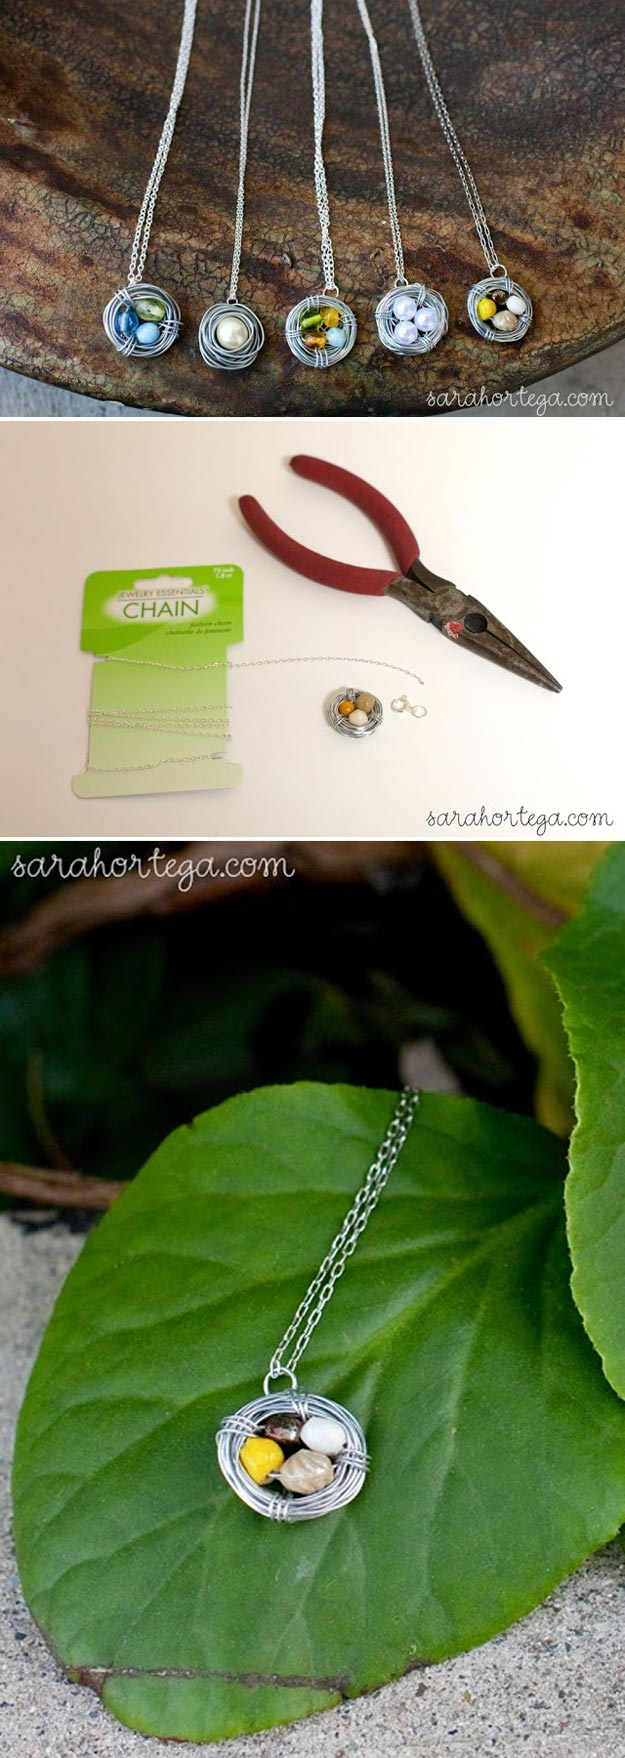 Cheap Crafts - DIY Bird Nest Necklace - Inexpensive Craft Project Ideas for Teenagers, Teens and Adults - Easy DIY Ideas To Make On A Budget - Cool Dollar Store Crafts and Things You Can Make For Free - Homemade Wall Art and Room Decor, Gifts and Presents, Tutorials and Step by Step Instructions http://teencrafts.com/cheap-diy-crafts